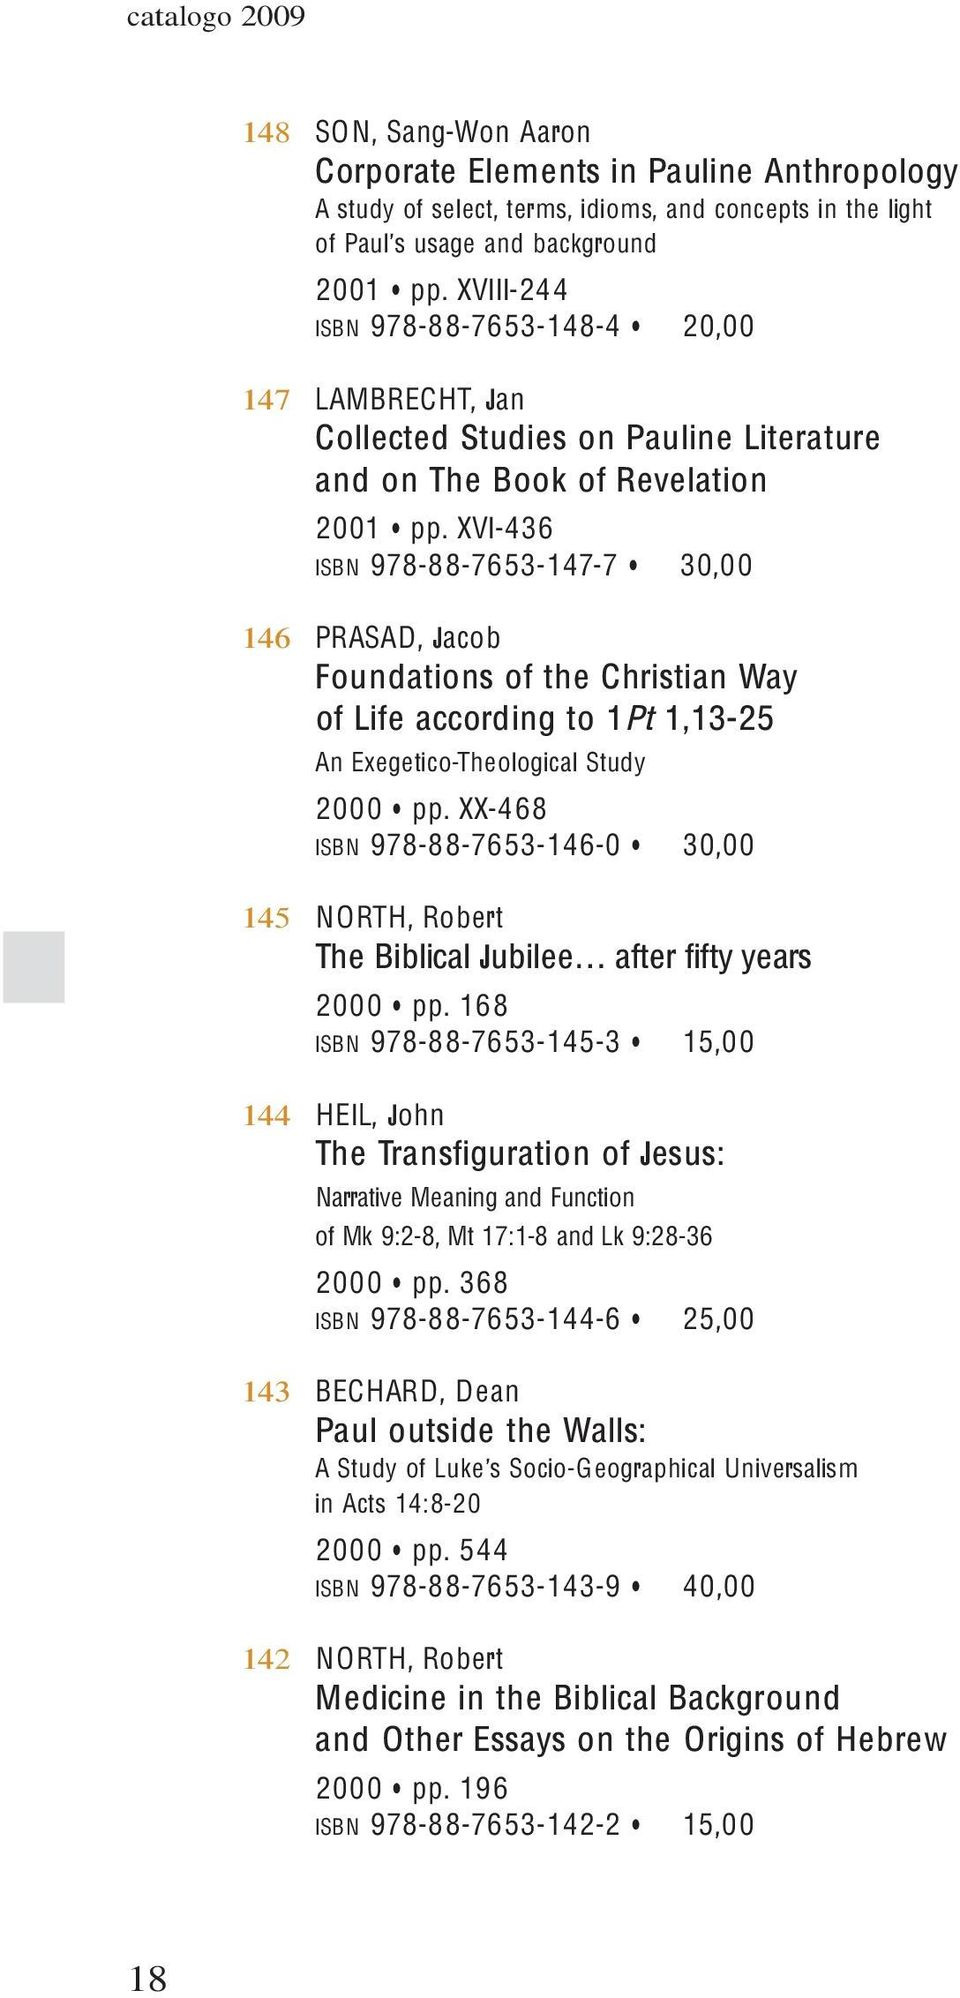 XVI-436 ISBN 978-88-7653-147-7 30,00 146 PRASAD, Jacob Foundations of the Christian Way of Life according to 1Pt 1,13-25 An Exegetico-Theological Study 2000 pp.